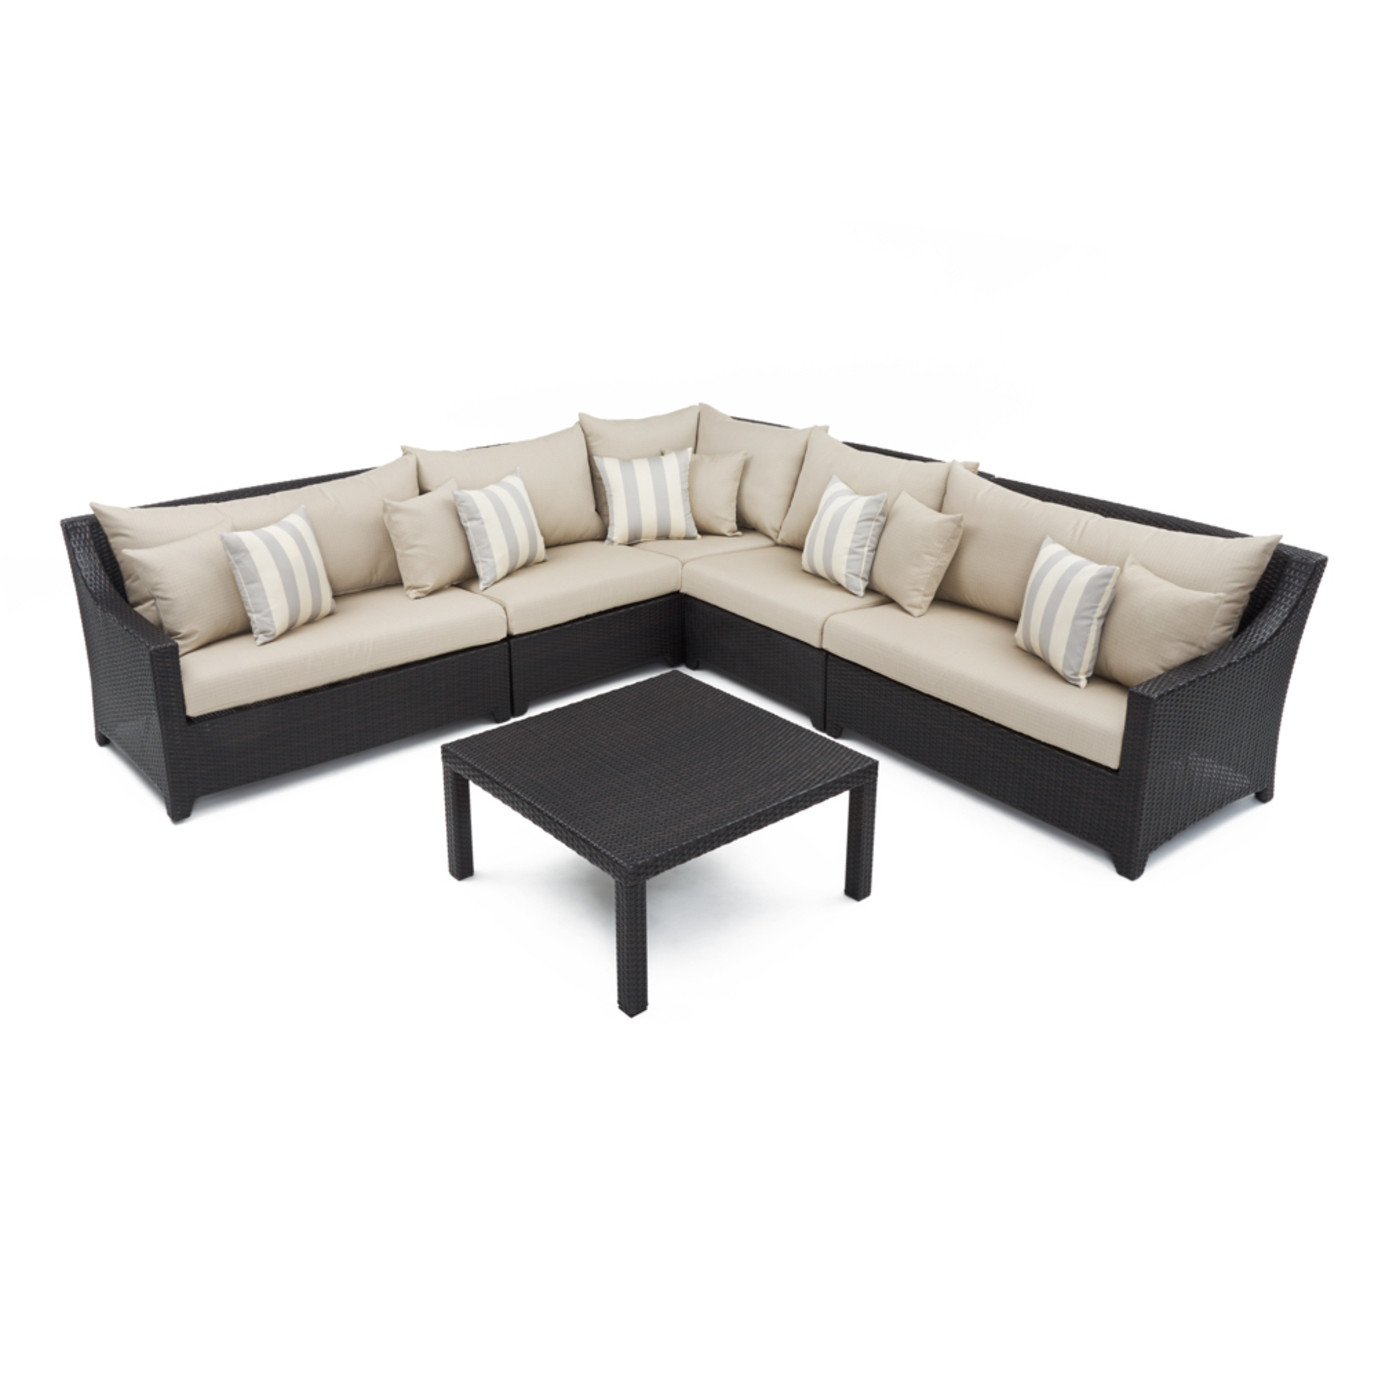 Deco™ 6 Piece Sectional and Table - Slate Gray